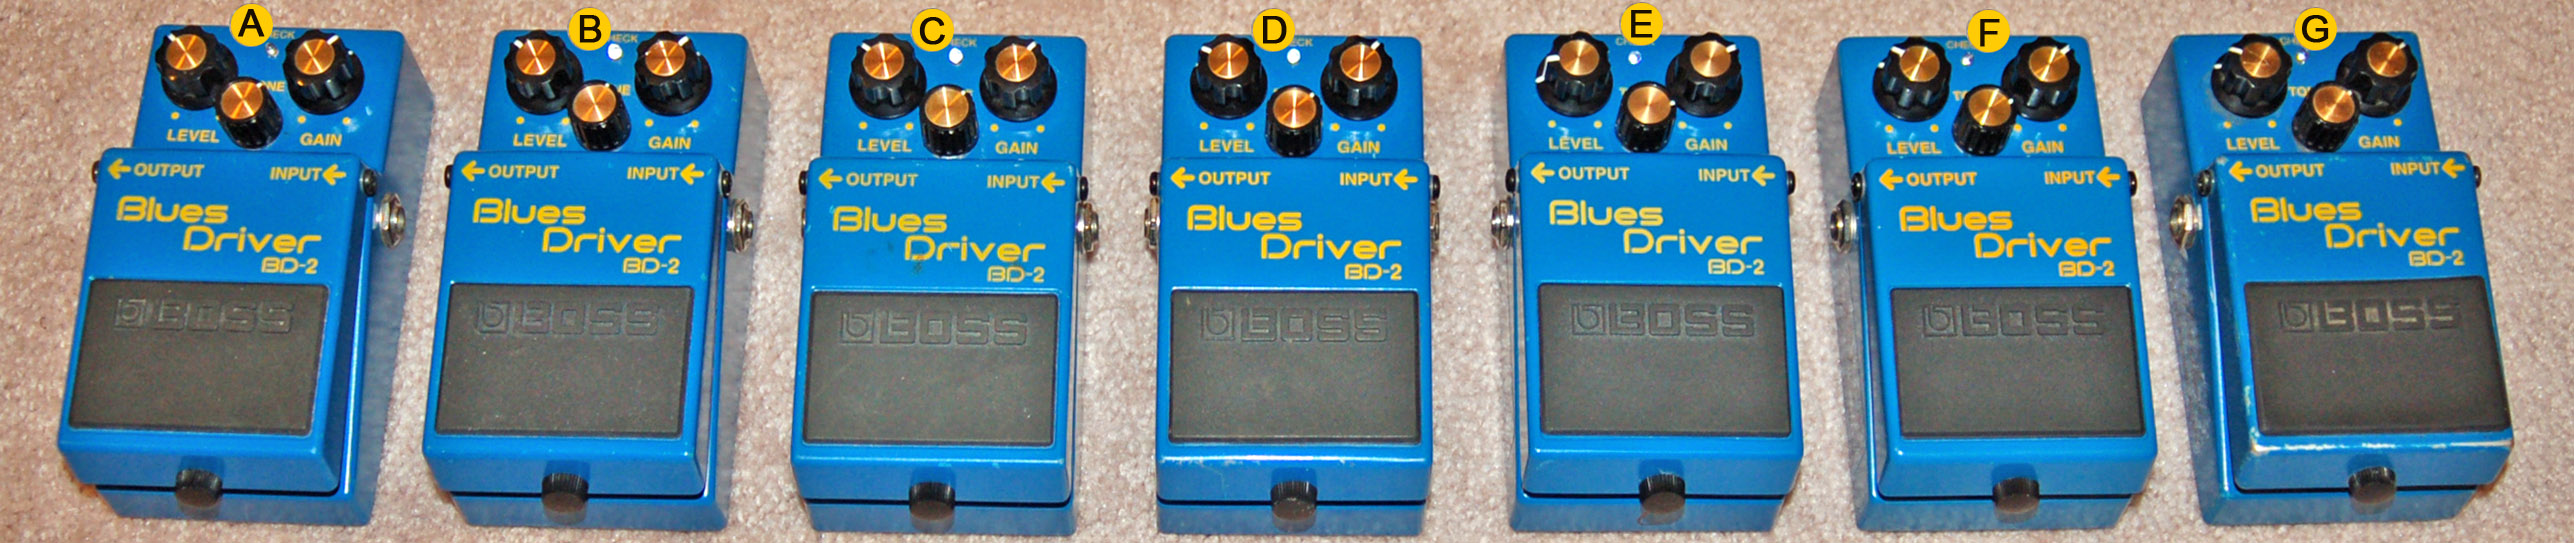 Boss bd-2 blues driver overdrive w/ keeley mod | reverb.